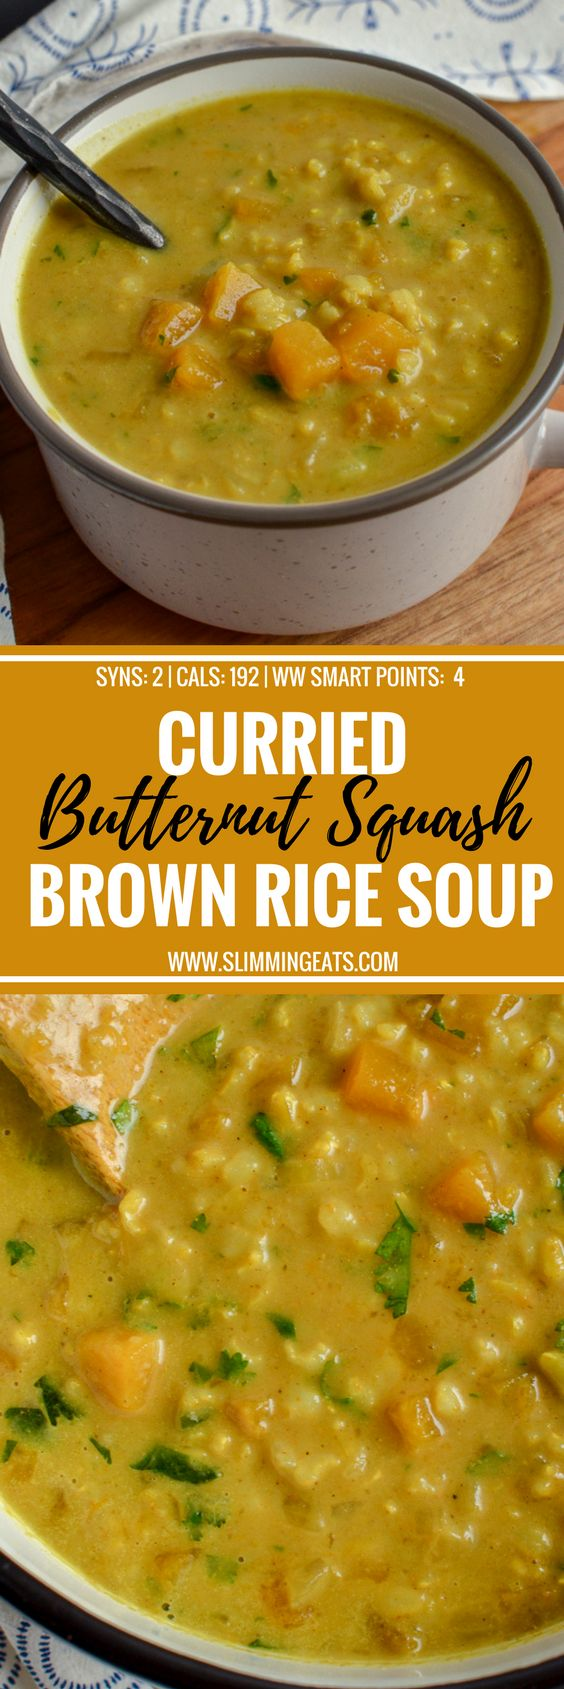 Curried Butternut Squash and Brown Rice Soup - a perfect recipe to warm yourself up on a cold winters day. Gluten Free, Dairy Free, Vegan, Instant Pot, Slimming World and Weight Watchers friendly   www.slimmingeats.com